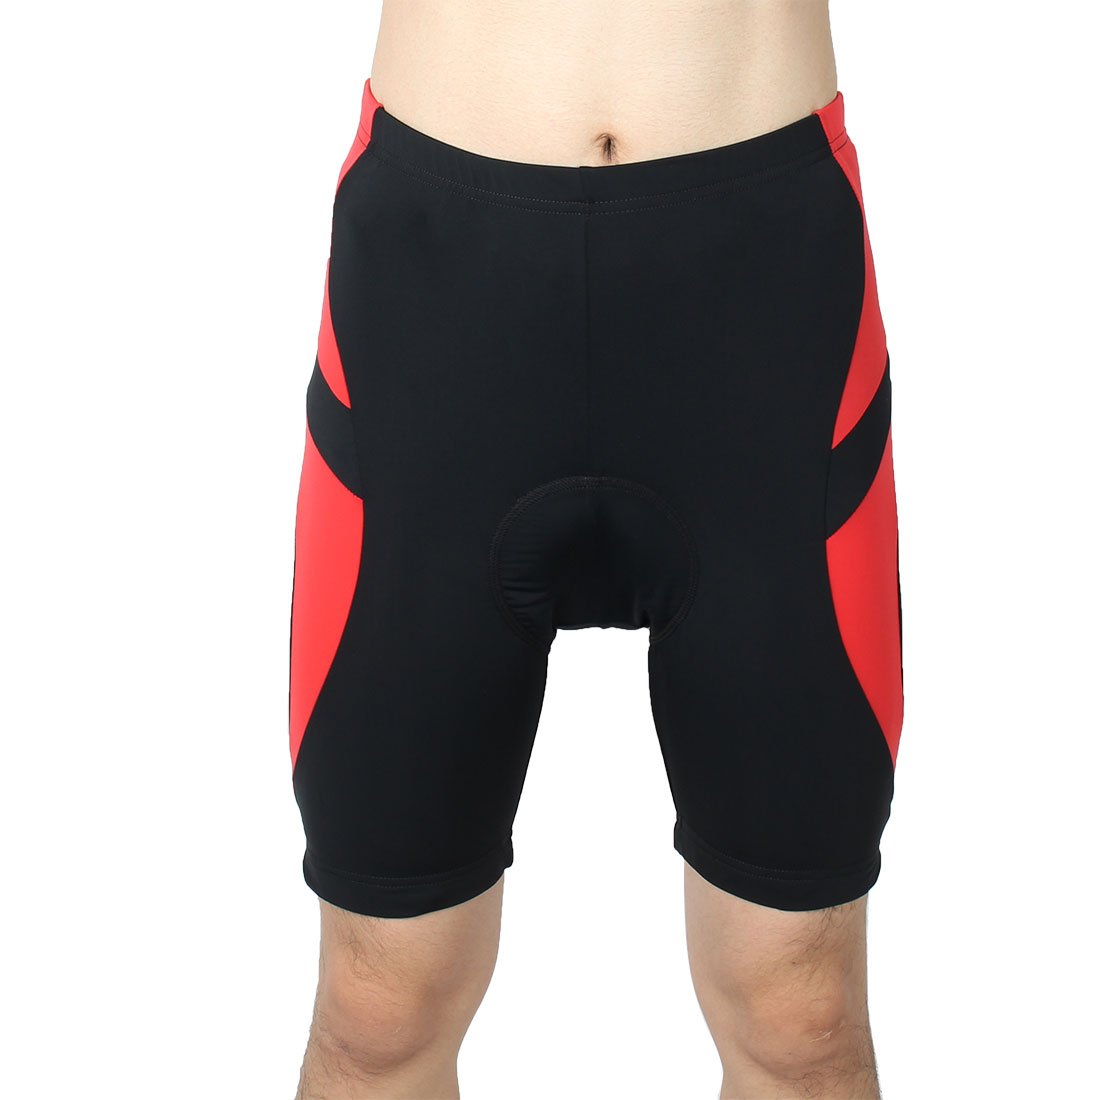 Men Outdoor Bicycle Underwear 3D Padded Breathable Cycling Sport Shorts Half Pants Black Red M (W 32)